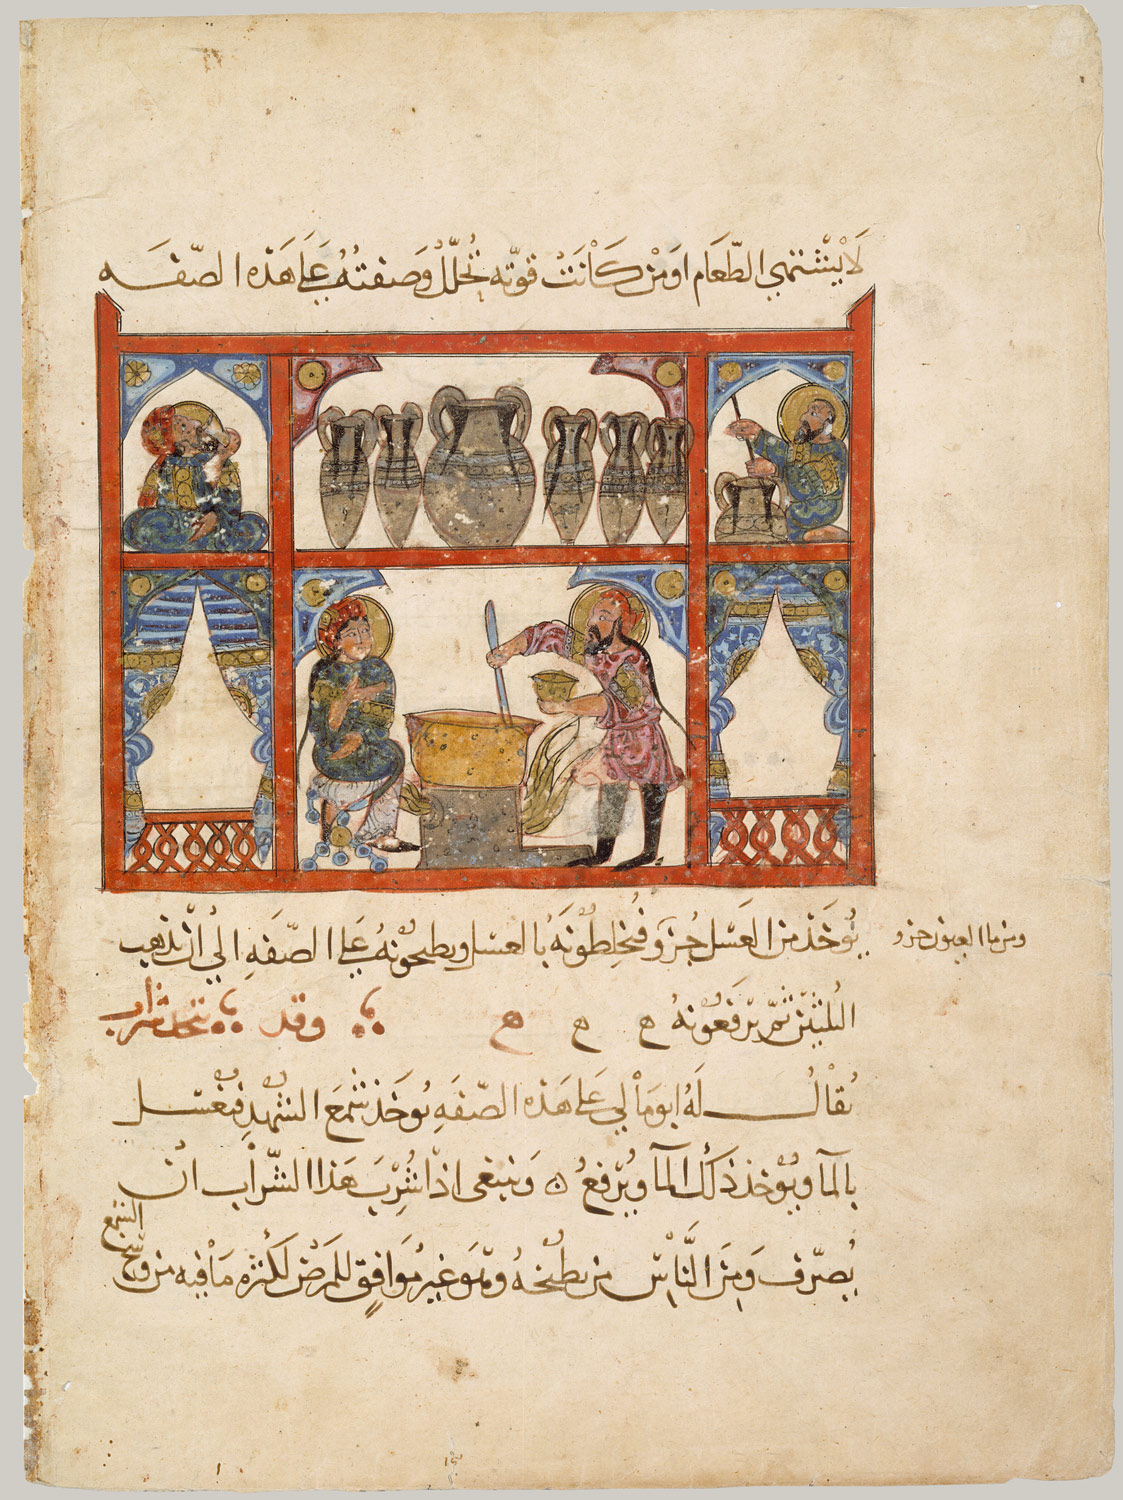 Preparing Medicine from Honey, from a Dispersed Manuscript of an Arabic Translation of De Materia Medica of Dioscorides